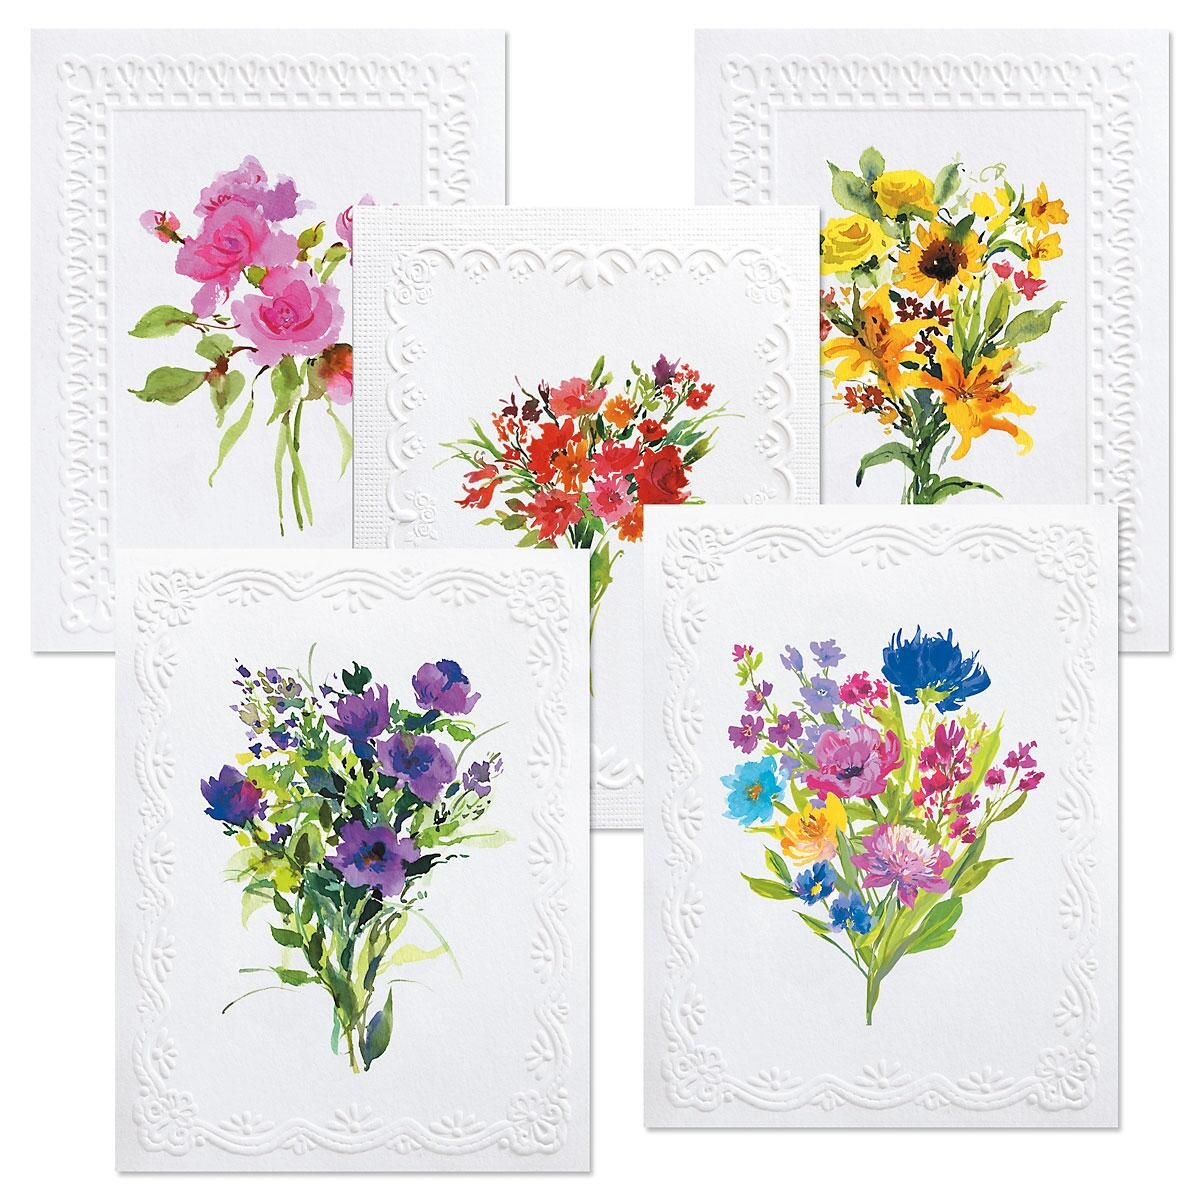 Deluxe Watercolor Note Cards Value Pack